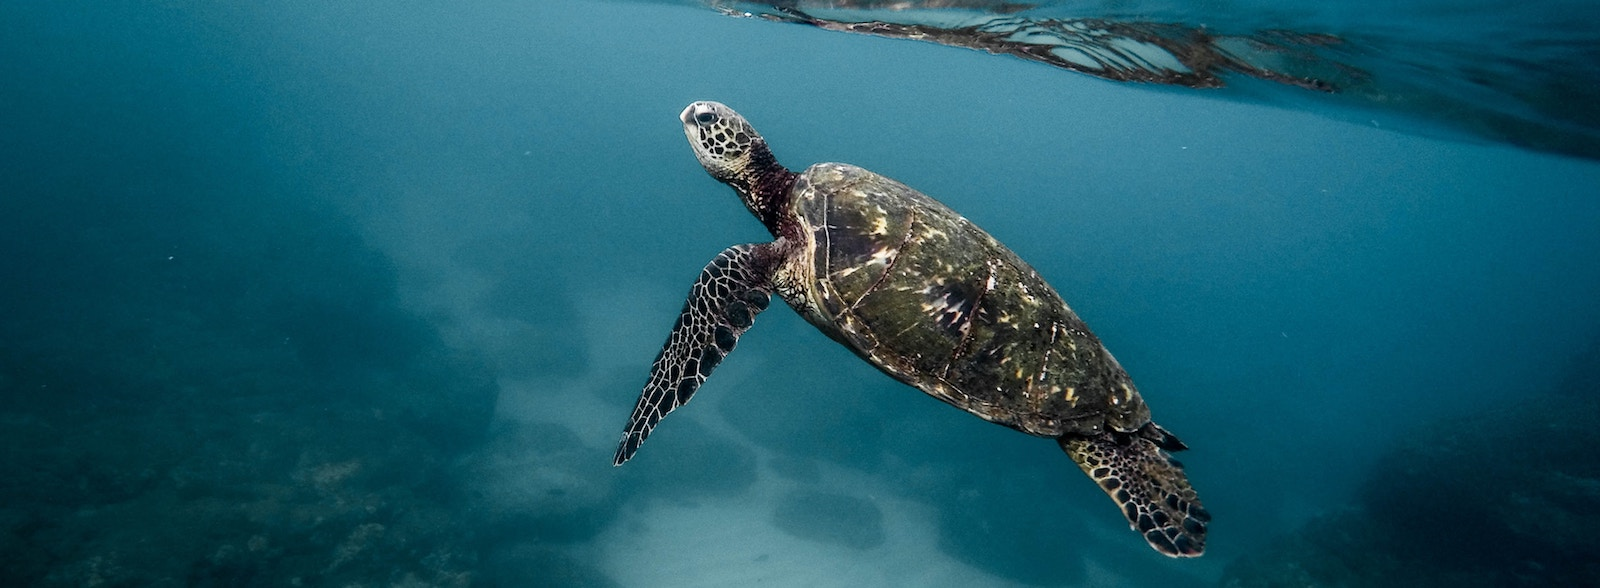 Chinese fishers have begun illegally harvesting sea turtles. (Photo: Jeremy Bishop/ unsplash)